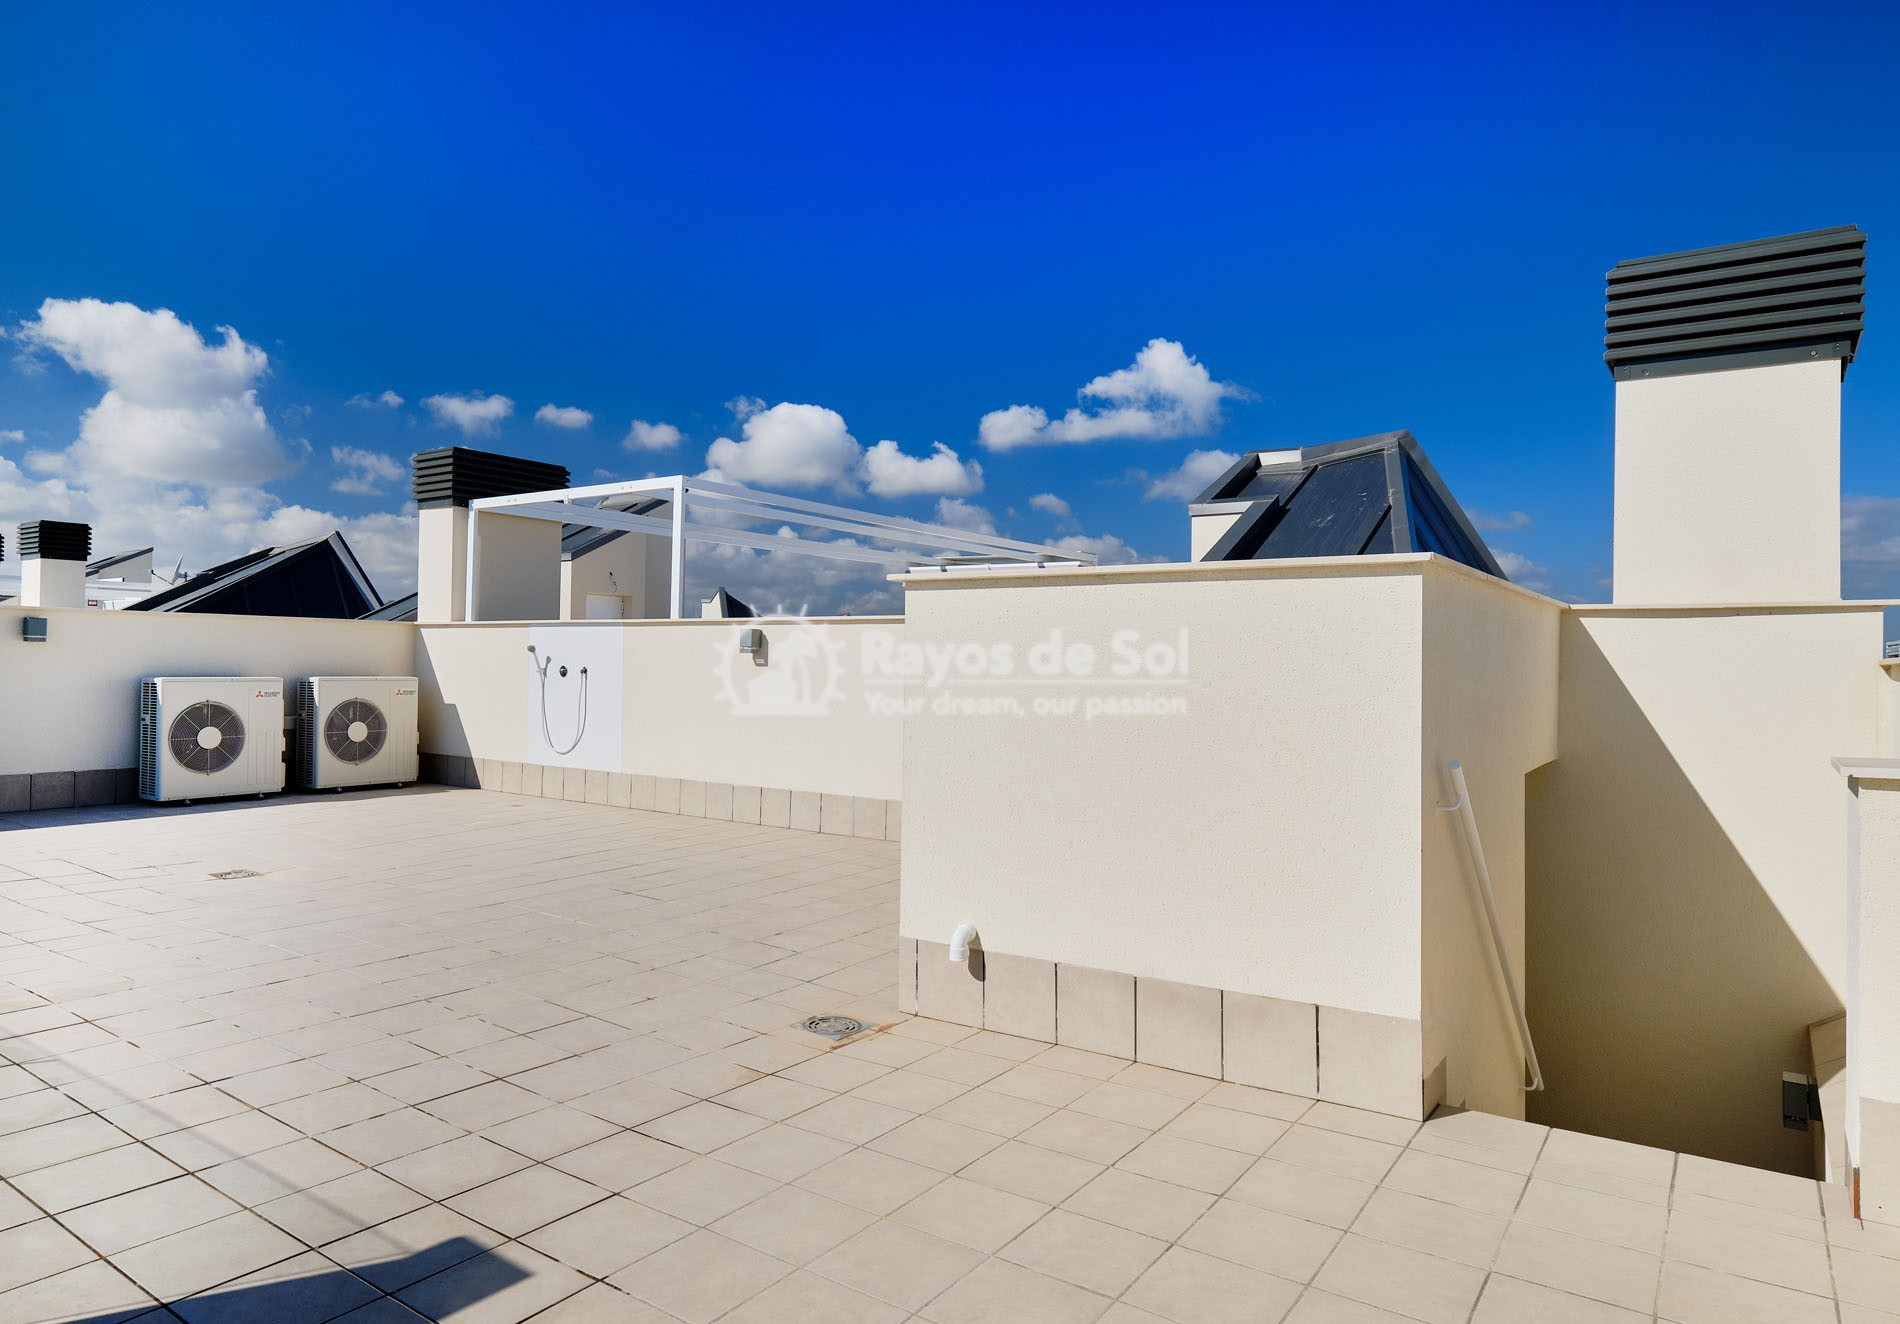 Townhouse  in Torrevieja, Costa Blanca (vamalia2-dpx) - 30